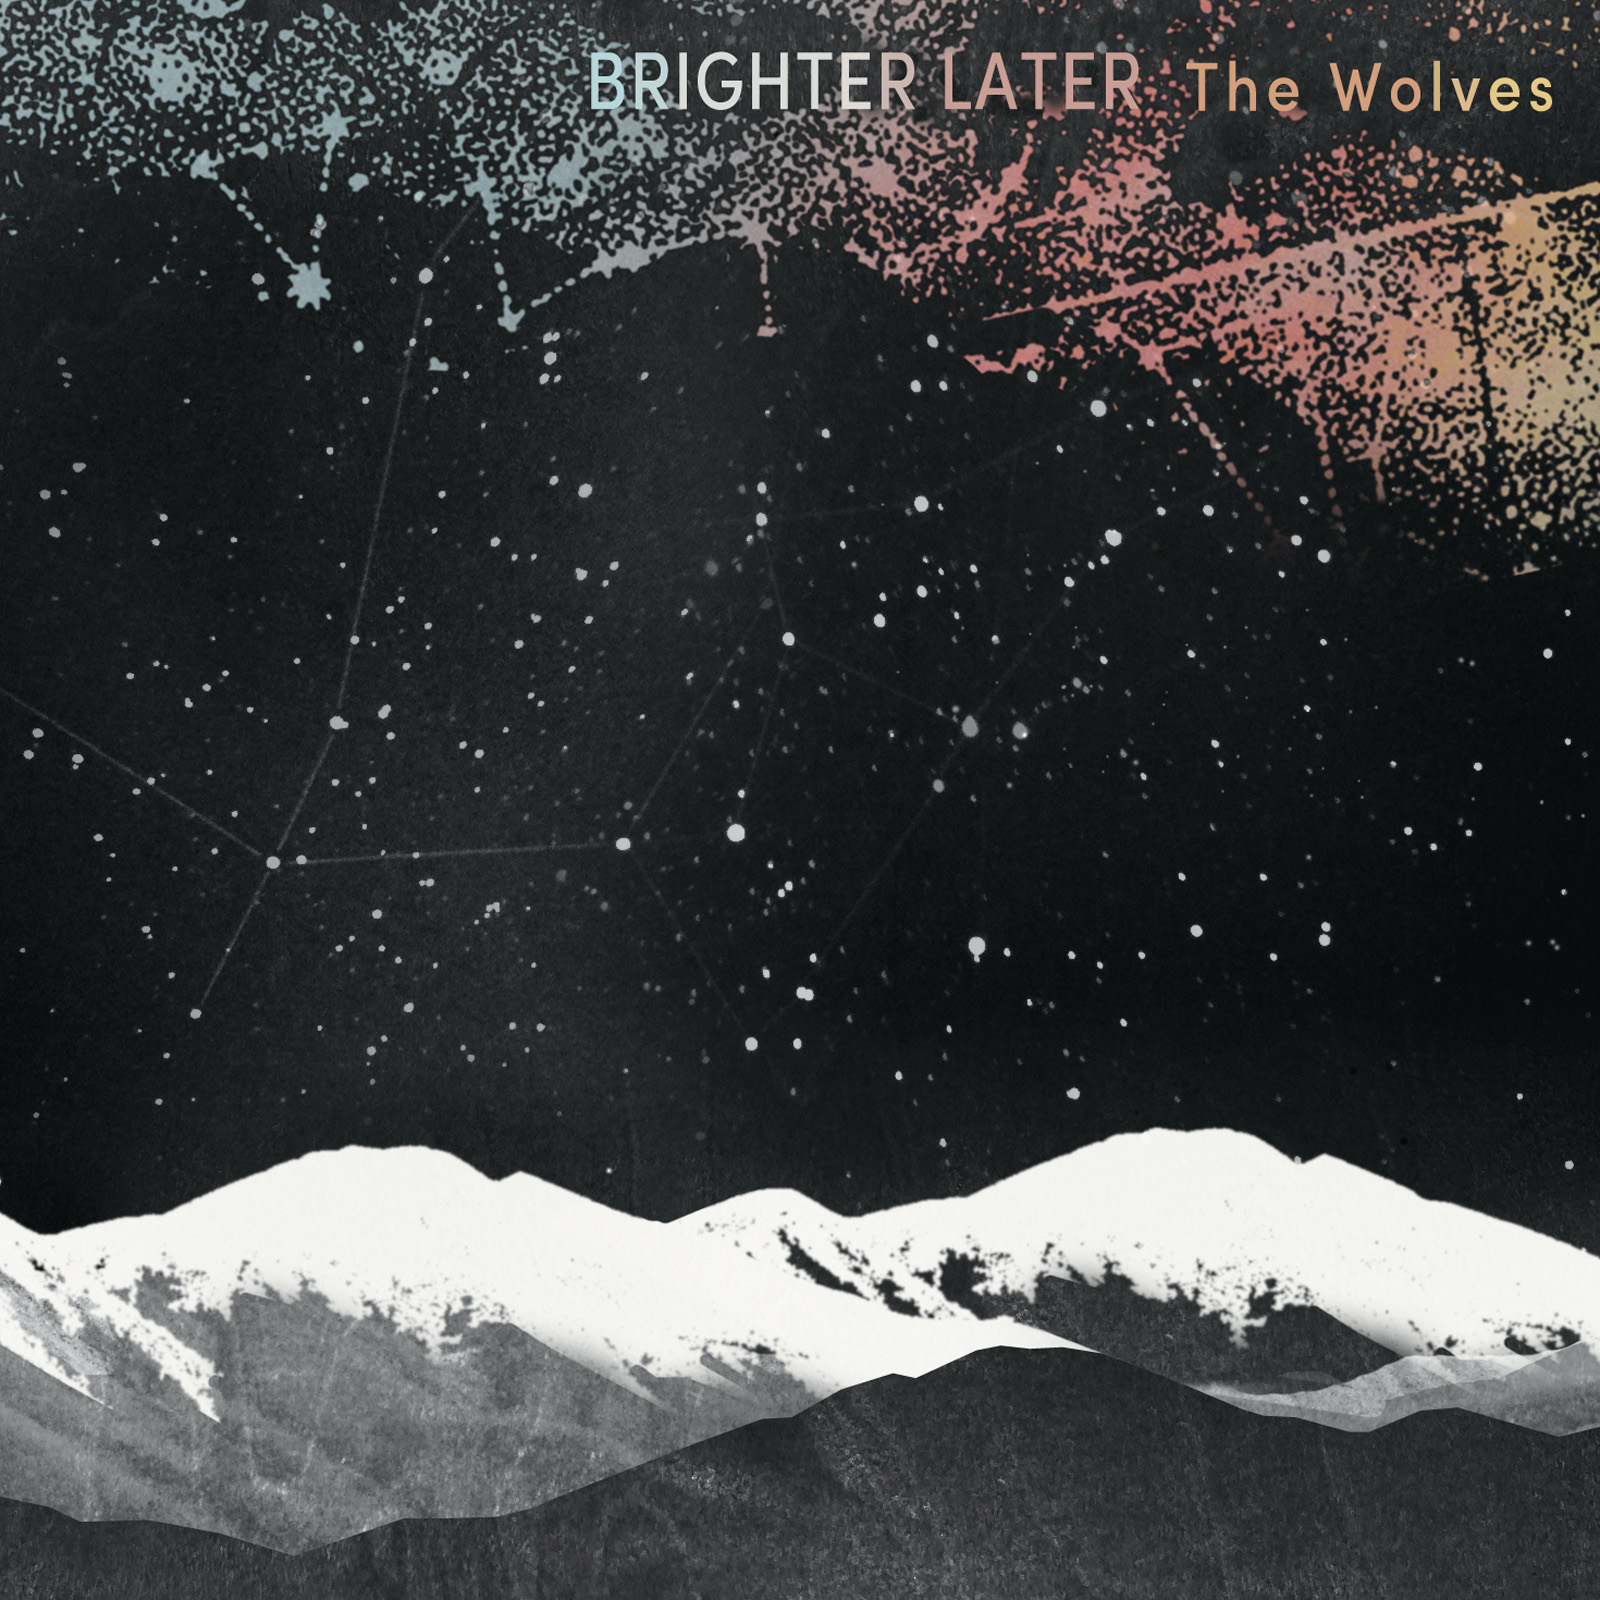 Debut album   The Wolves   now available on iTunes  HERE . Physical copies of the album can be ordered on  our Bandcamp page  and shipped worldwide.      Melbourne & Sydney people, the album is available at these record stores:    Basement Discs (Melb CBD), Pure Pop Records (St Kilda), Polyester Records, Thornbury Records, Readings Carlton, Red Eye Records (Sydney).